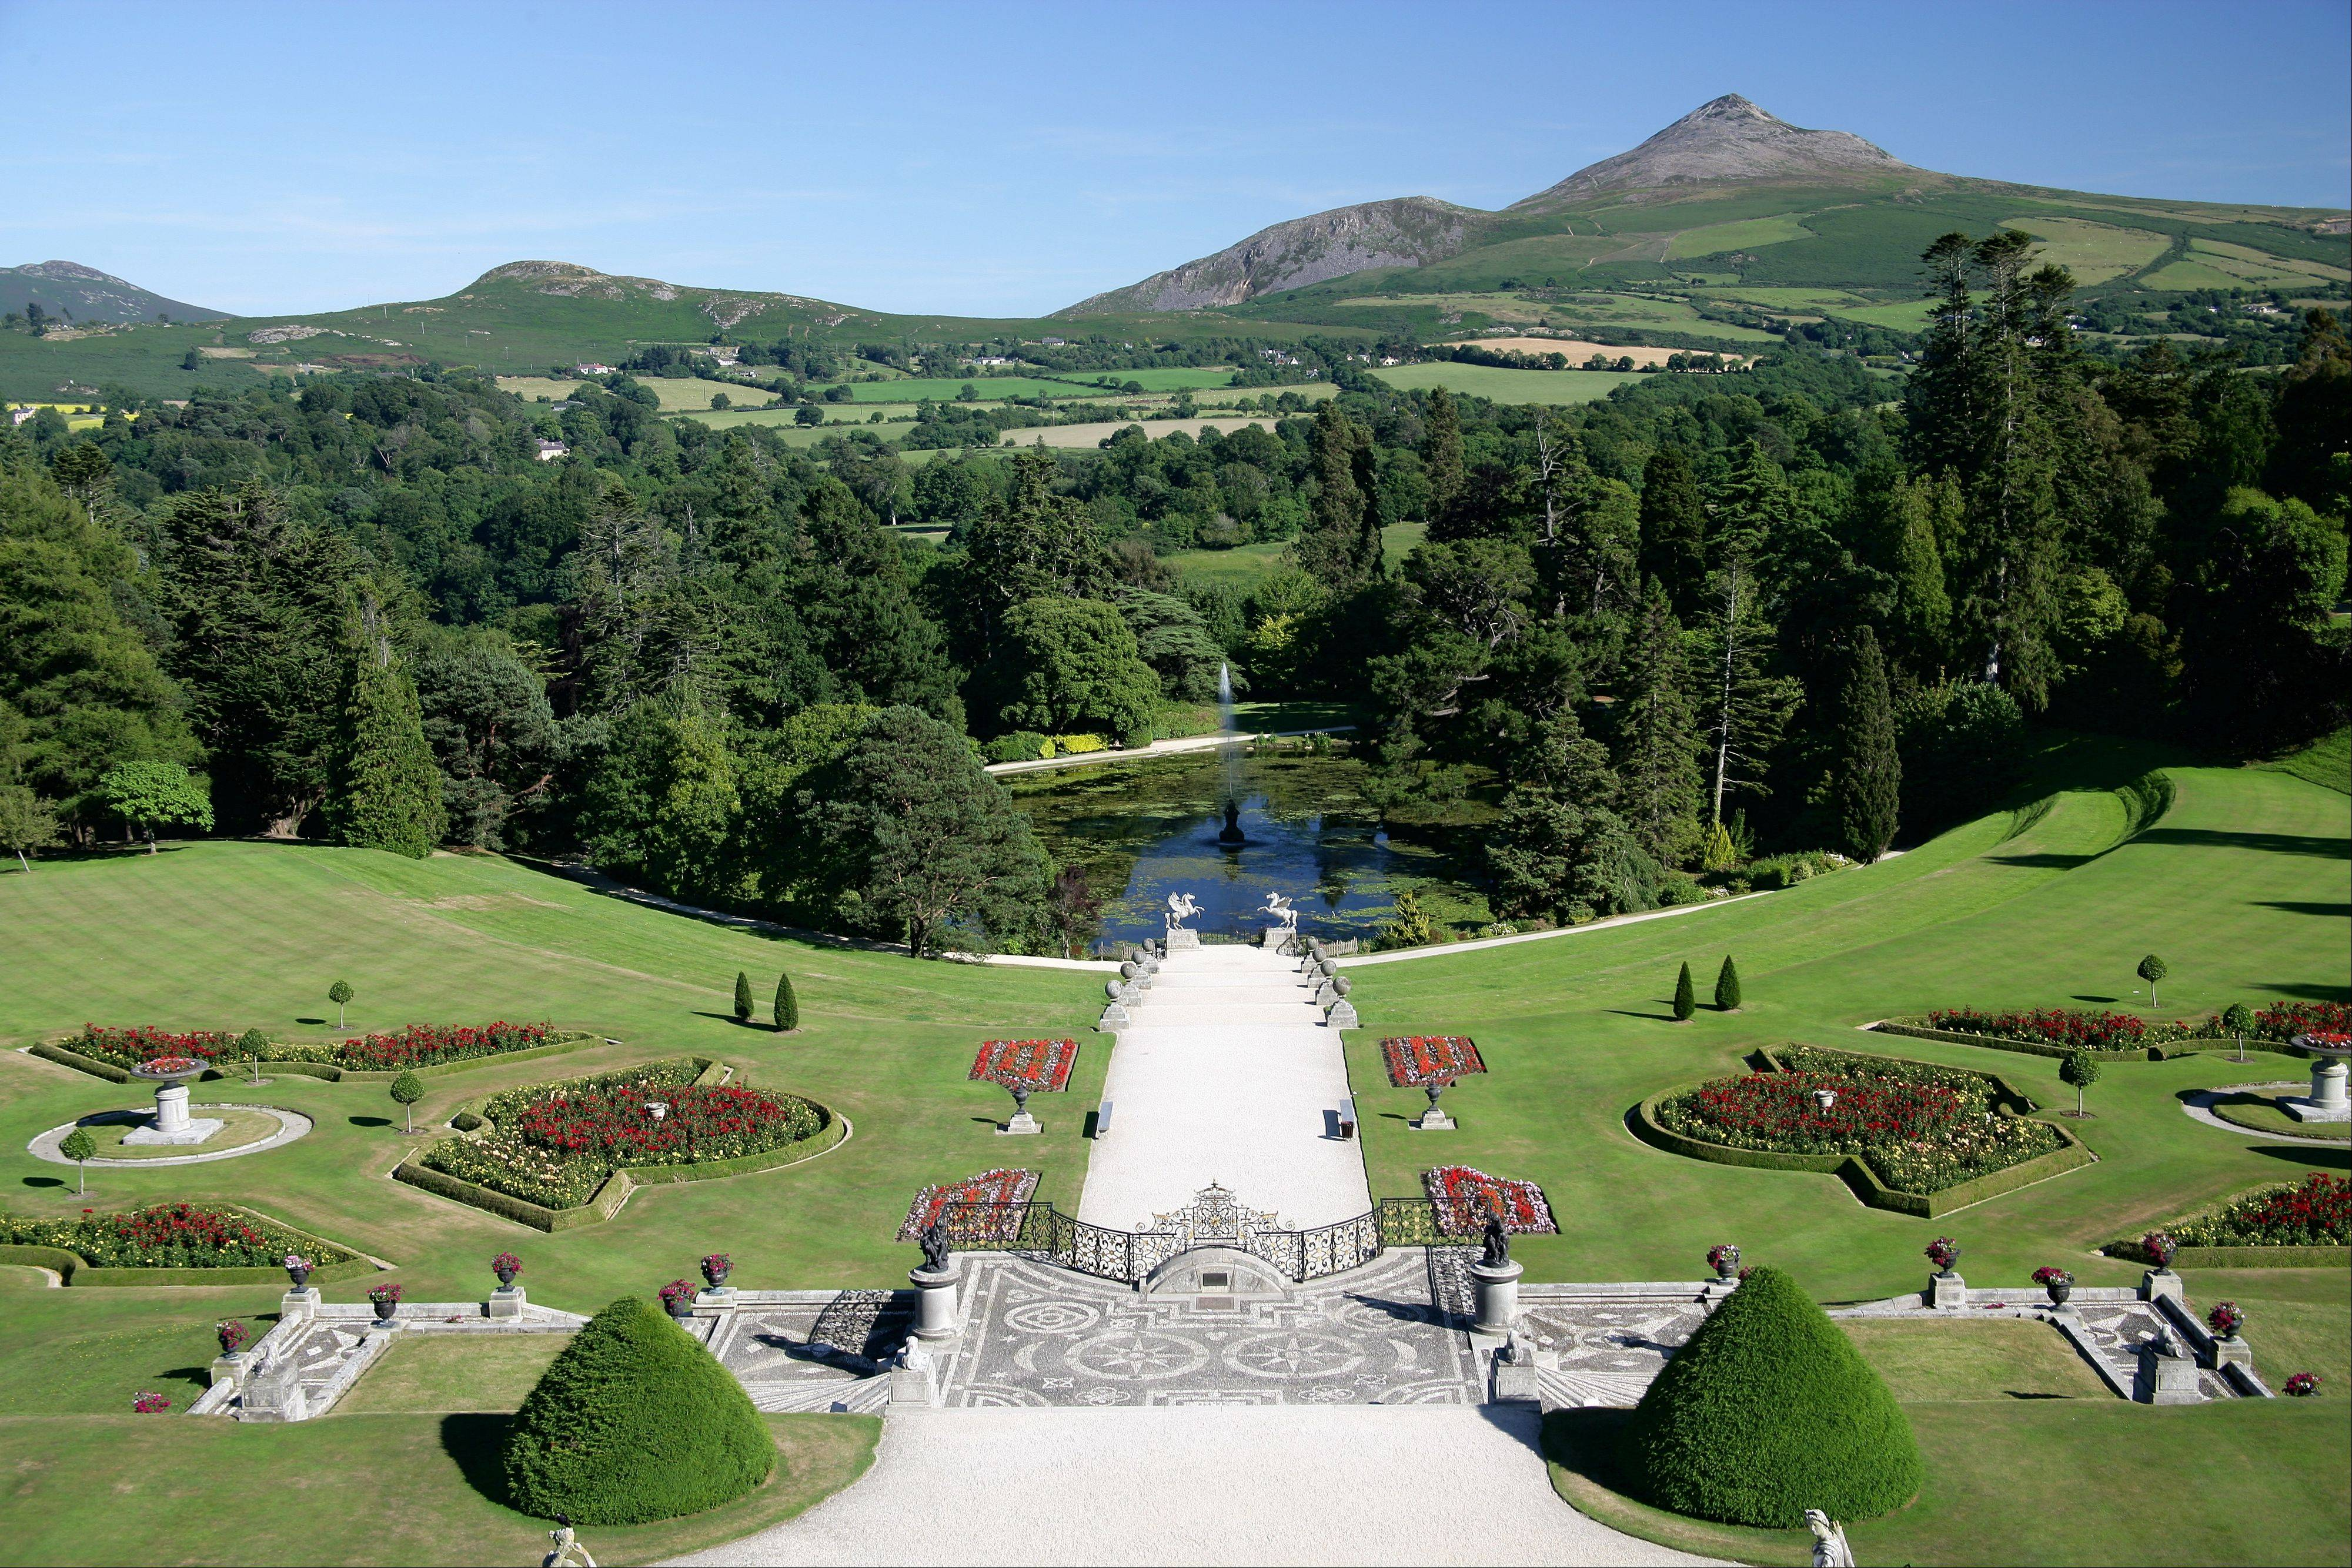 This undated photo from the Powerscourt Estate shows the gardens and grounds of the estate in Enniskerry, County Wicklow, Ireland, with the Wicklow Mountains in the background. The Powerscourt Estate and other great houses, castles and gardens in Ireland are hosting events connected to The Gathering, a yearlong nationwide event inviting Irish emigrants and their descendants home to celebrate their heritage. Powerscourt recently hosted a talk by a genealogist to help visitors track their �Wicklow roots.�